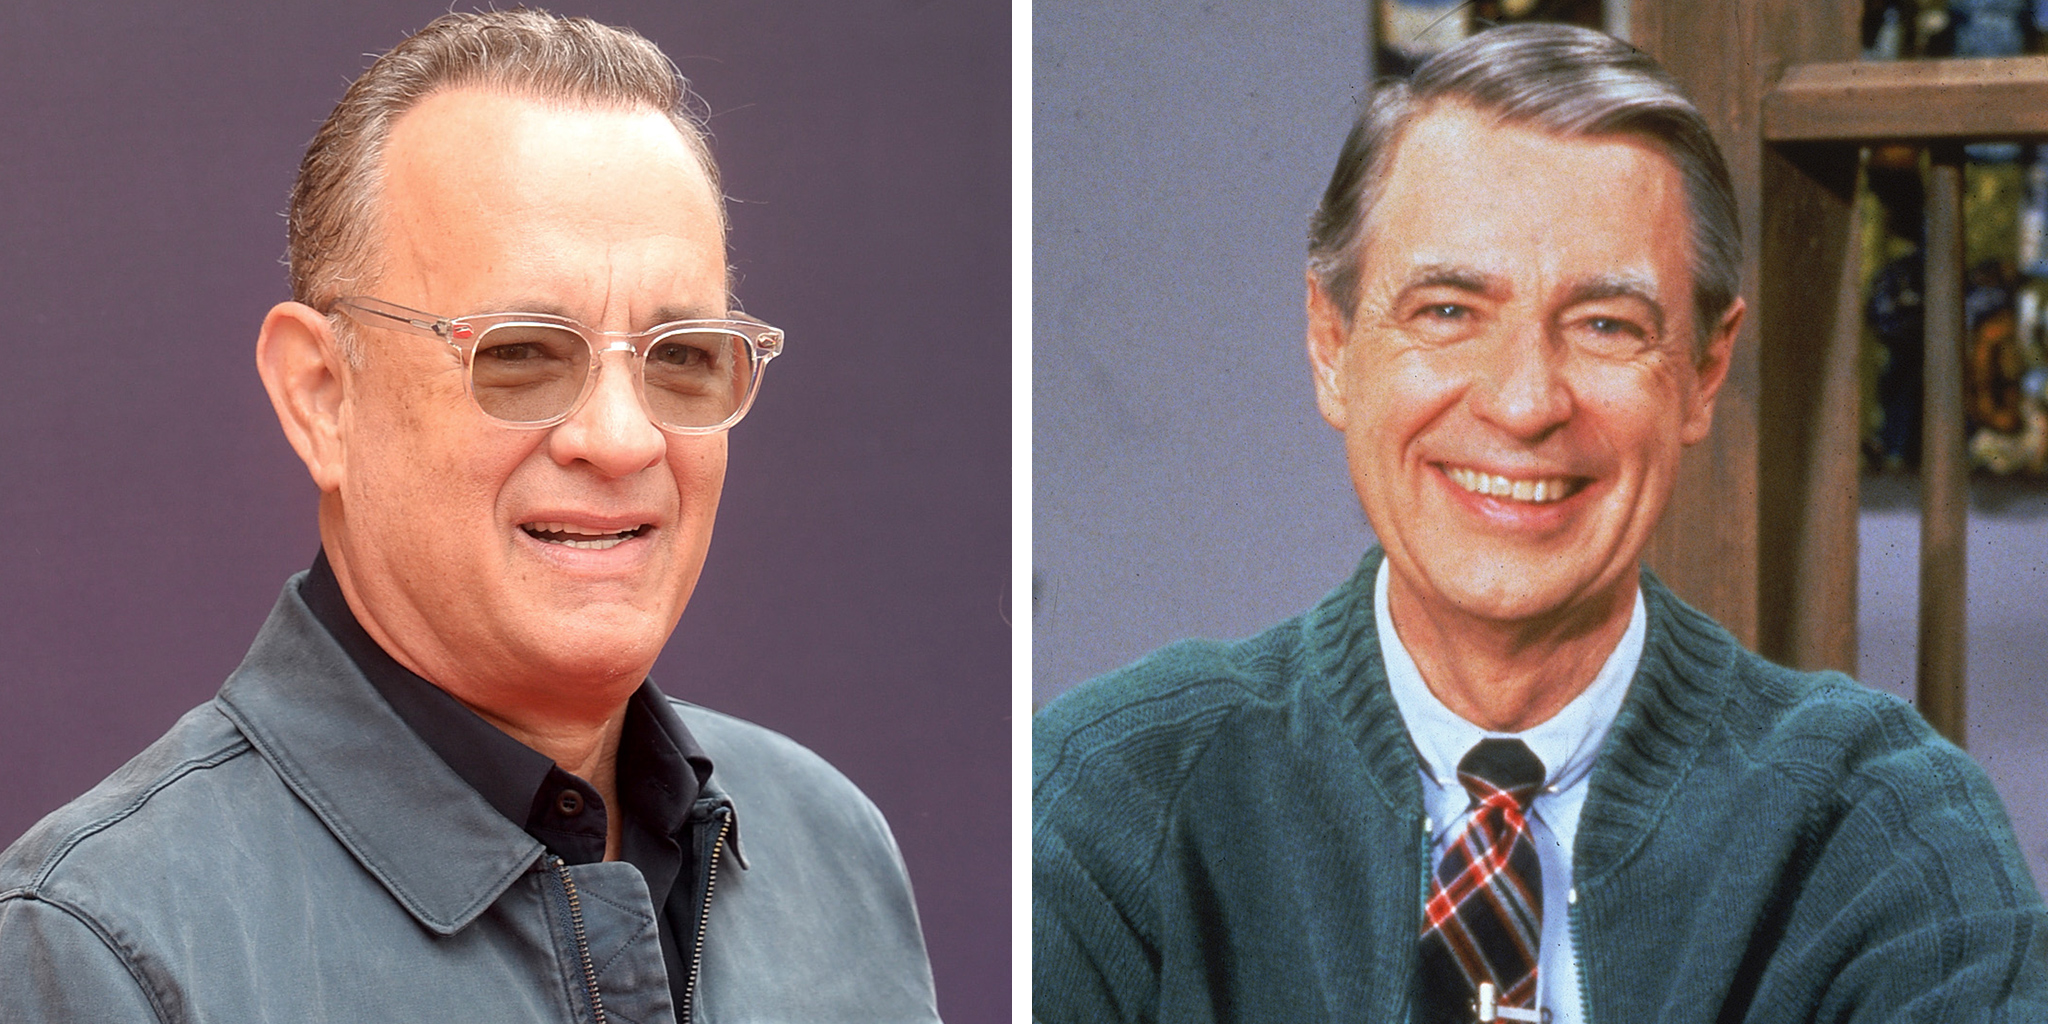 Tom Hanks Is Apparently Related To Mister Rogers Time